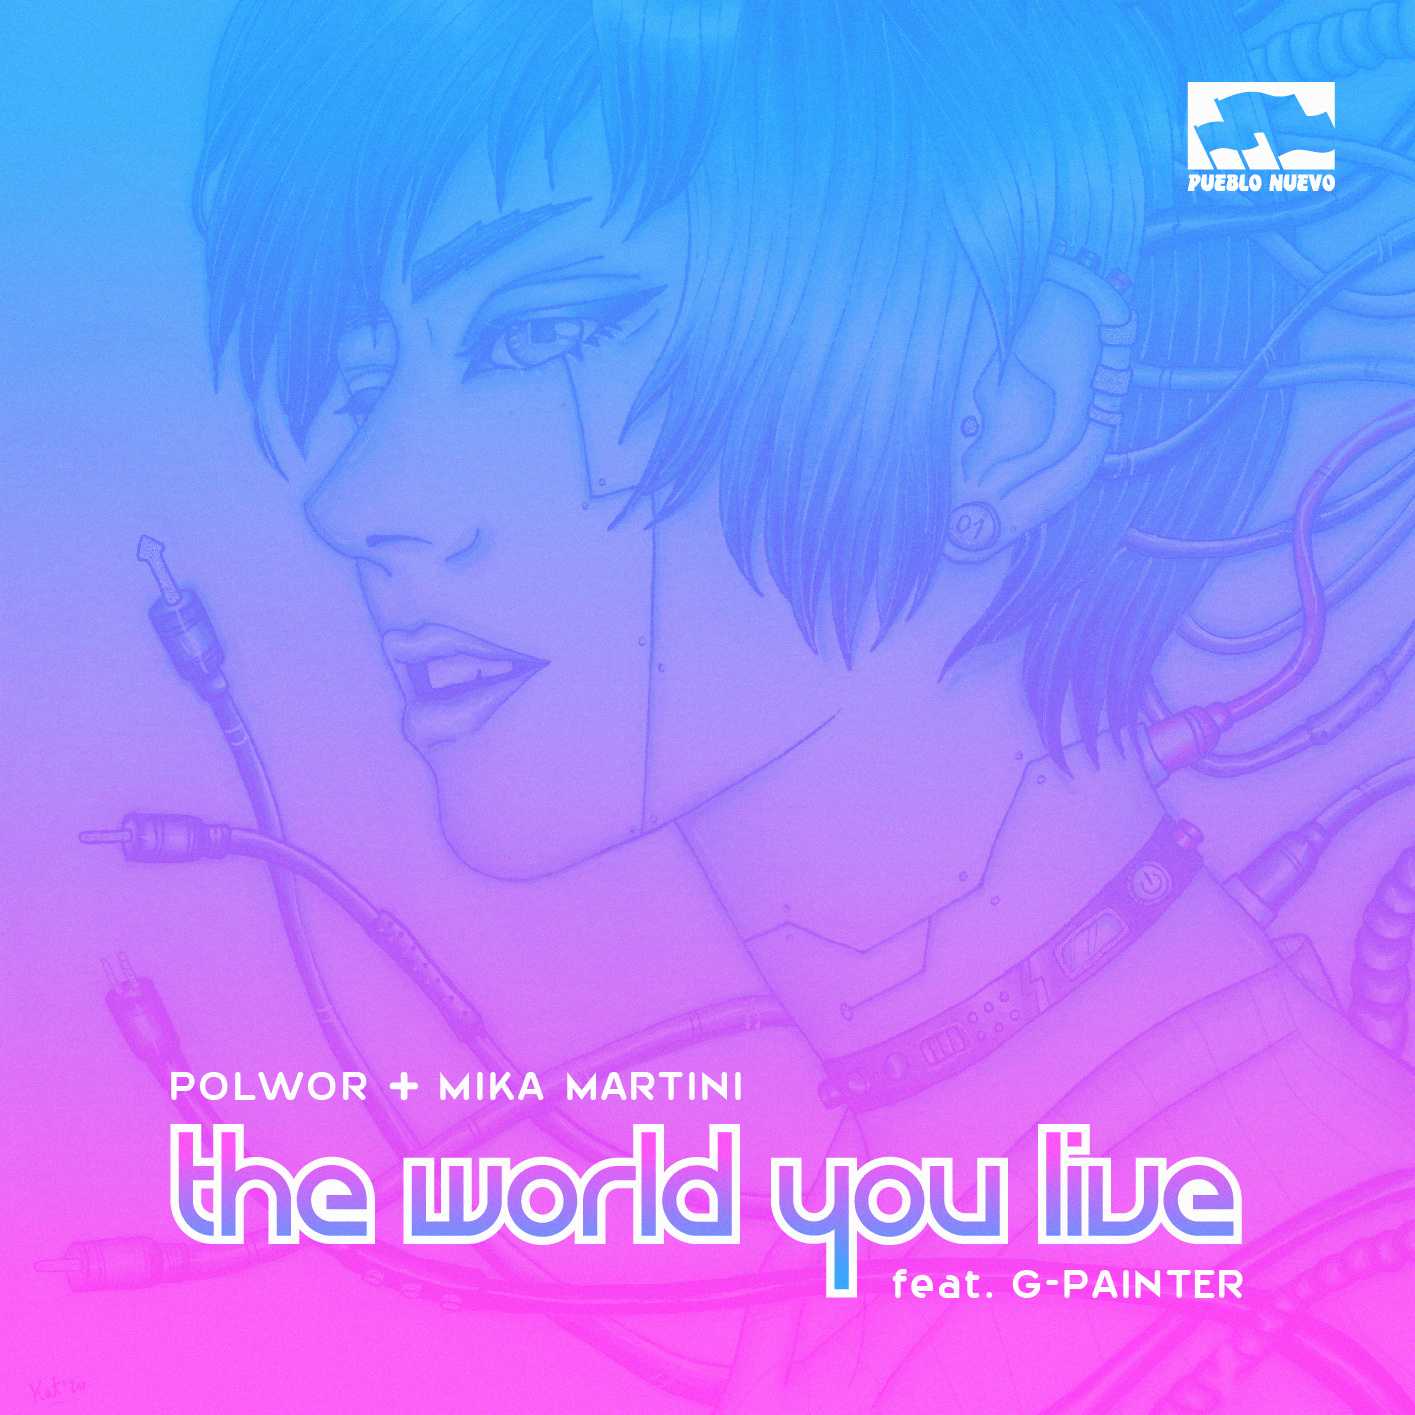 Polwor+Mika+G-Painter – The world you live